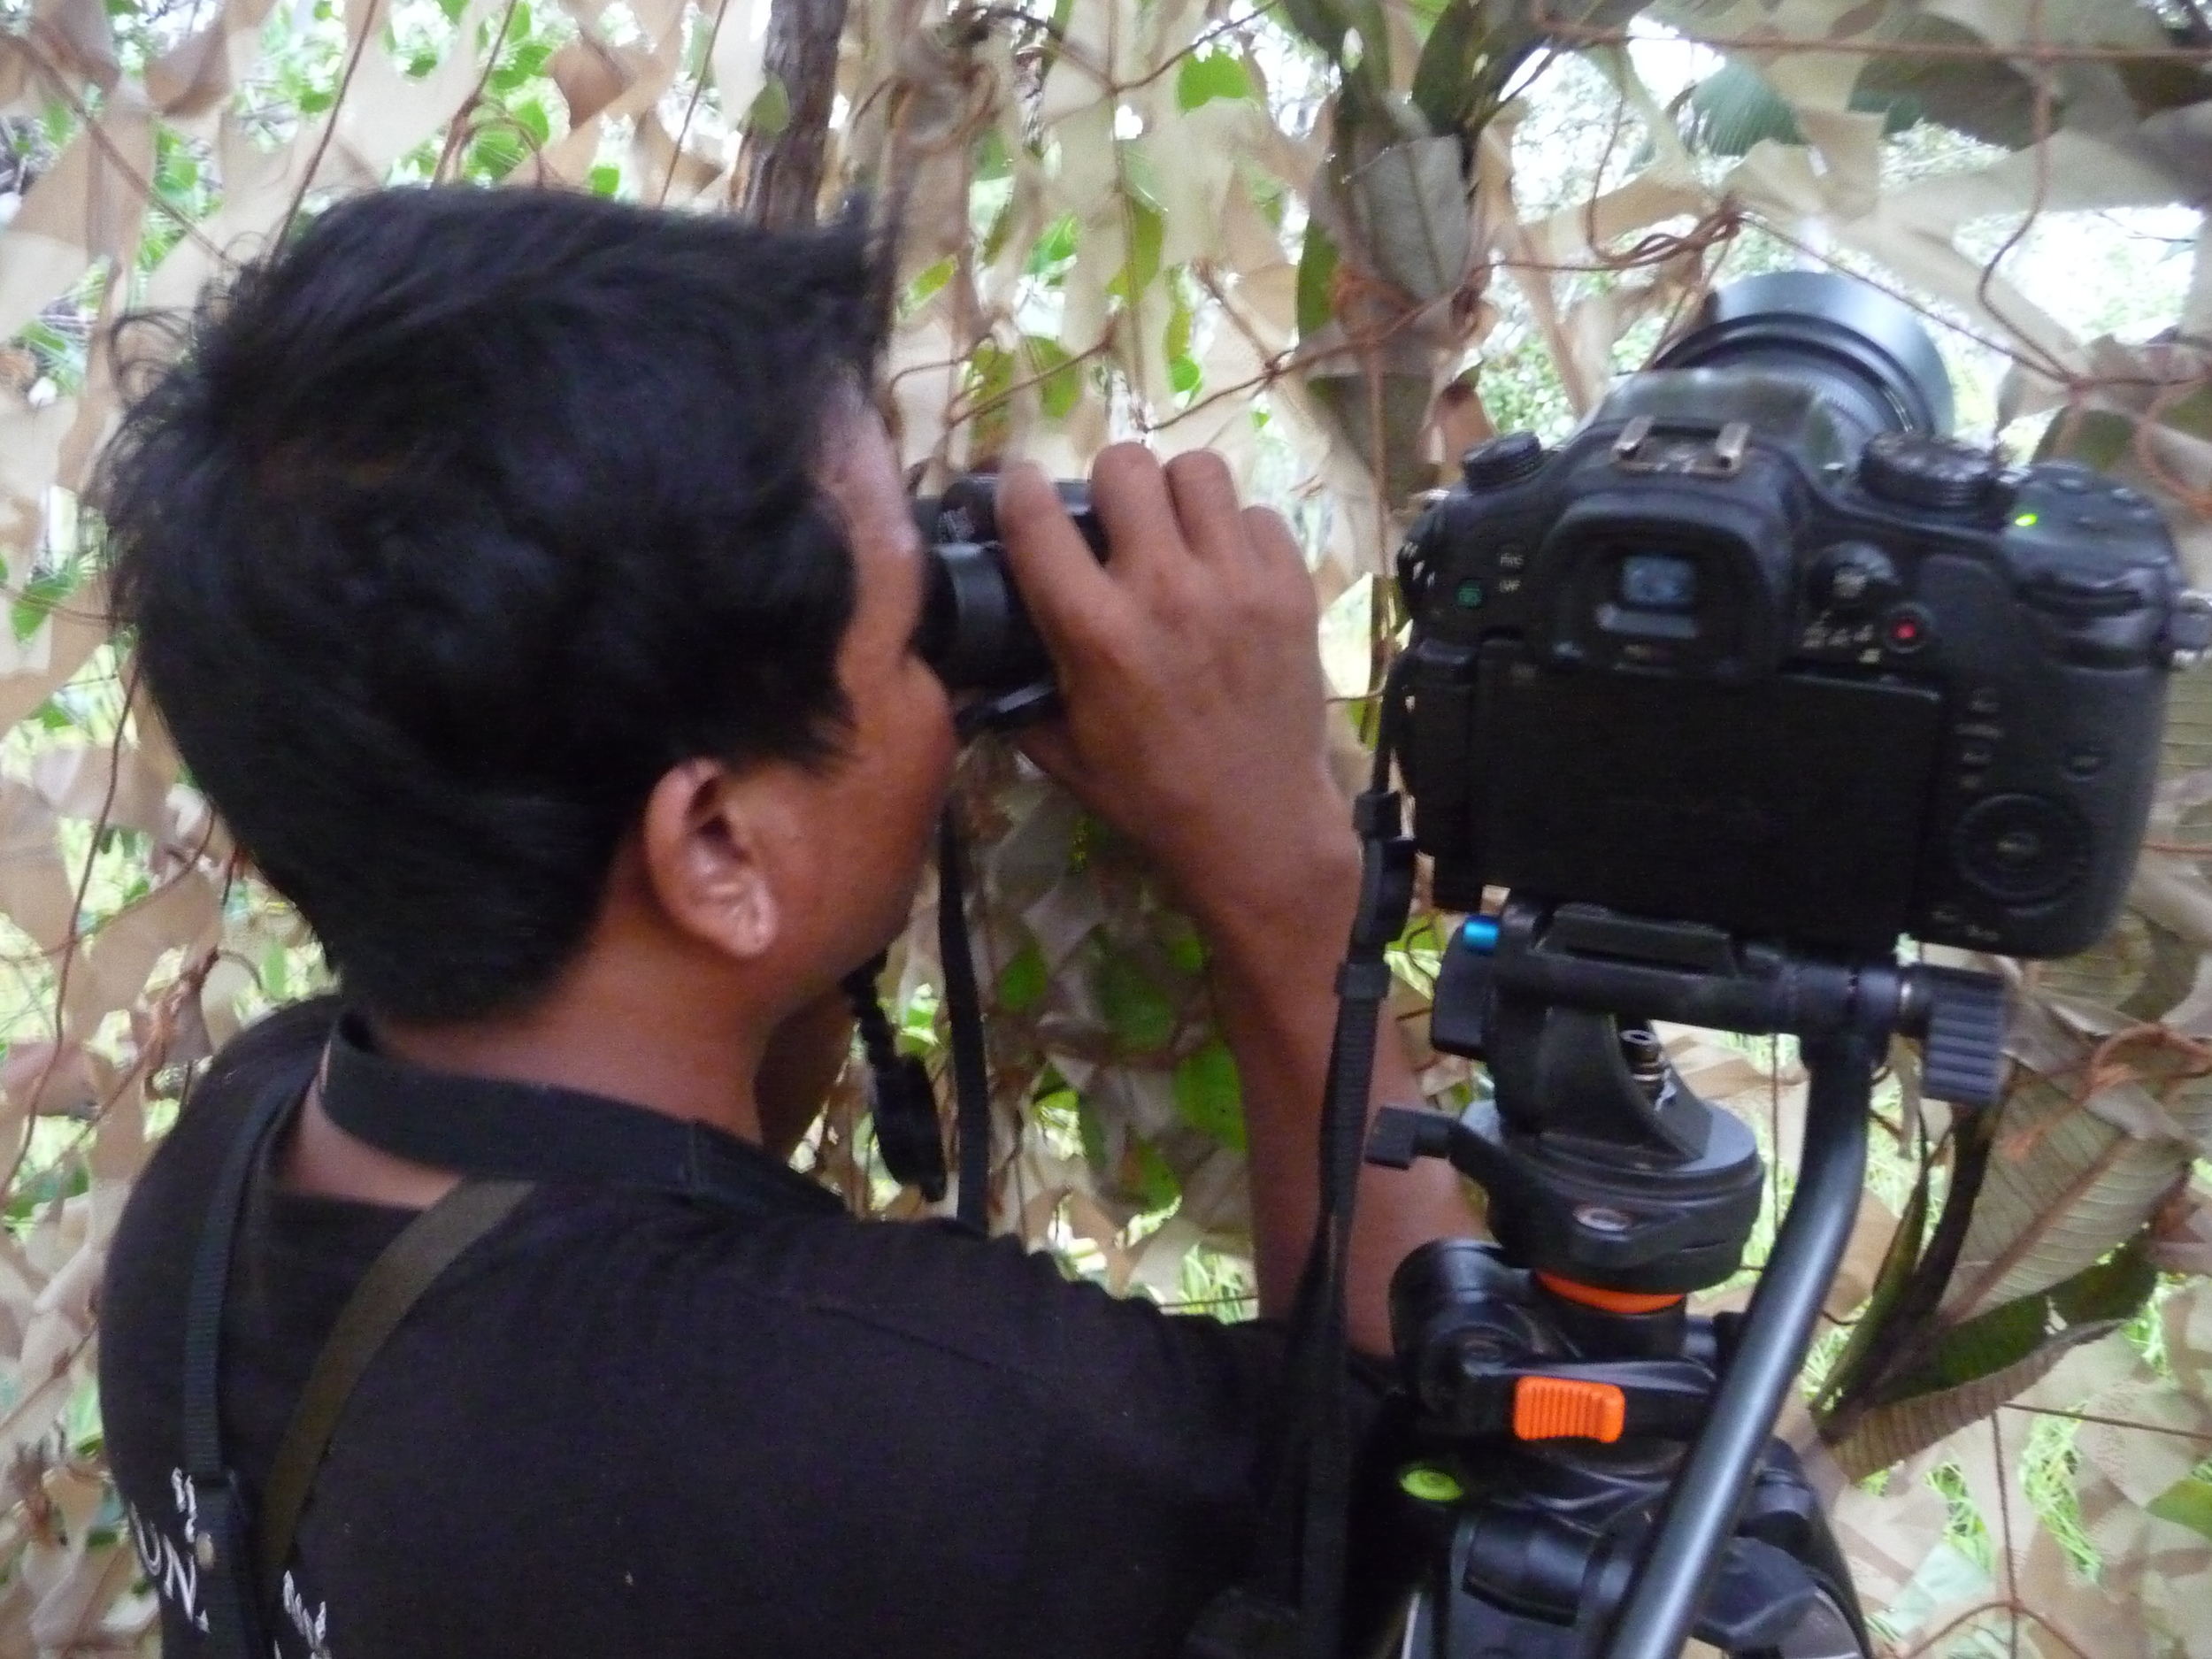 If you have high quality footage or picture of Cambodia's Wildlife, we can put them to good use.